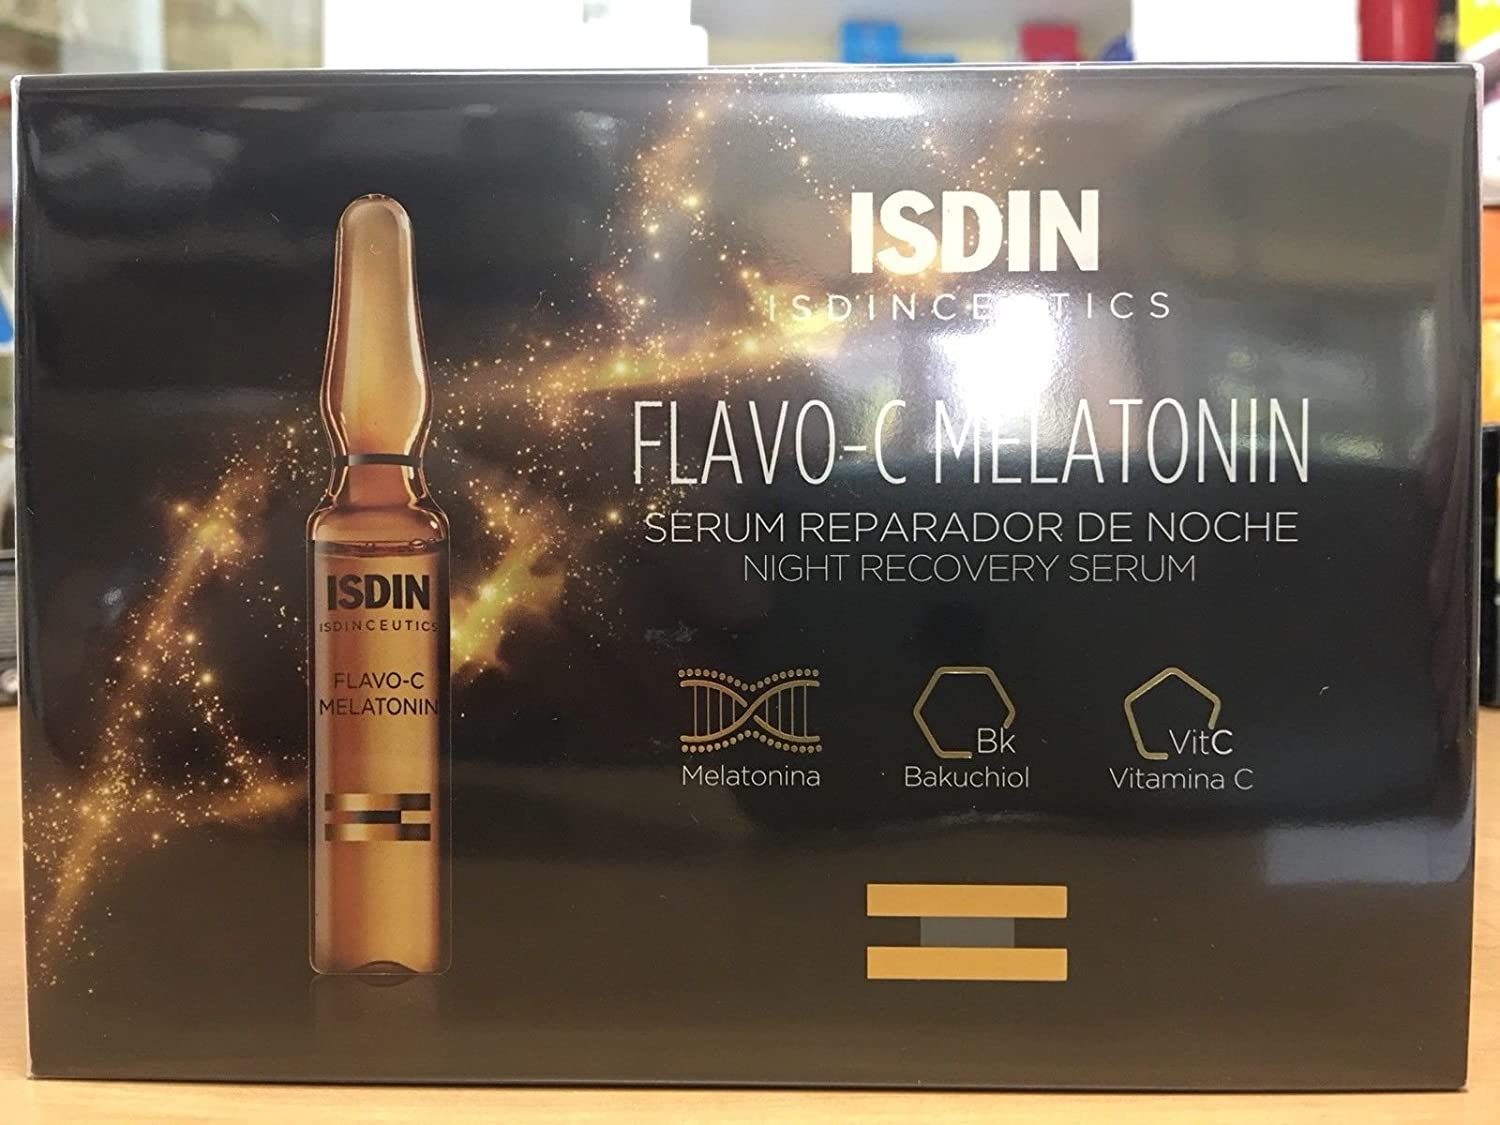 Amazon.com: ISDIN FLAVO-C MELATONIN NIGHT RECOVERY SERUM 10 AMPOULES Great Skincare: Beauty